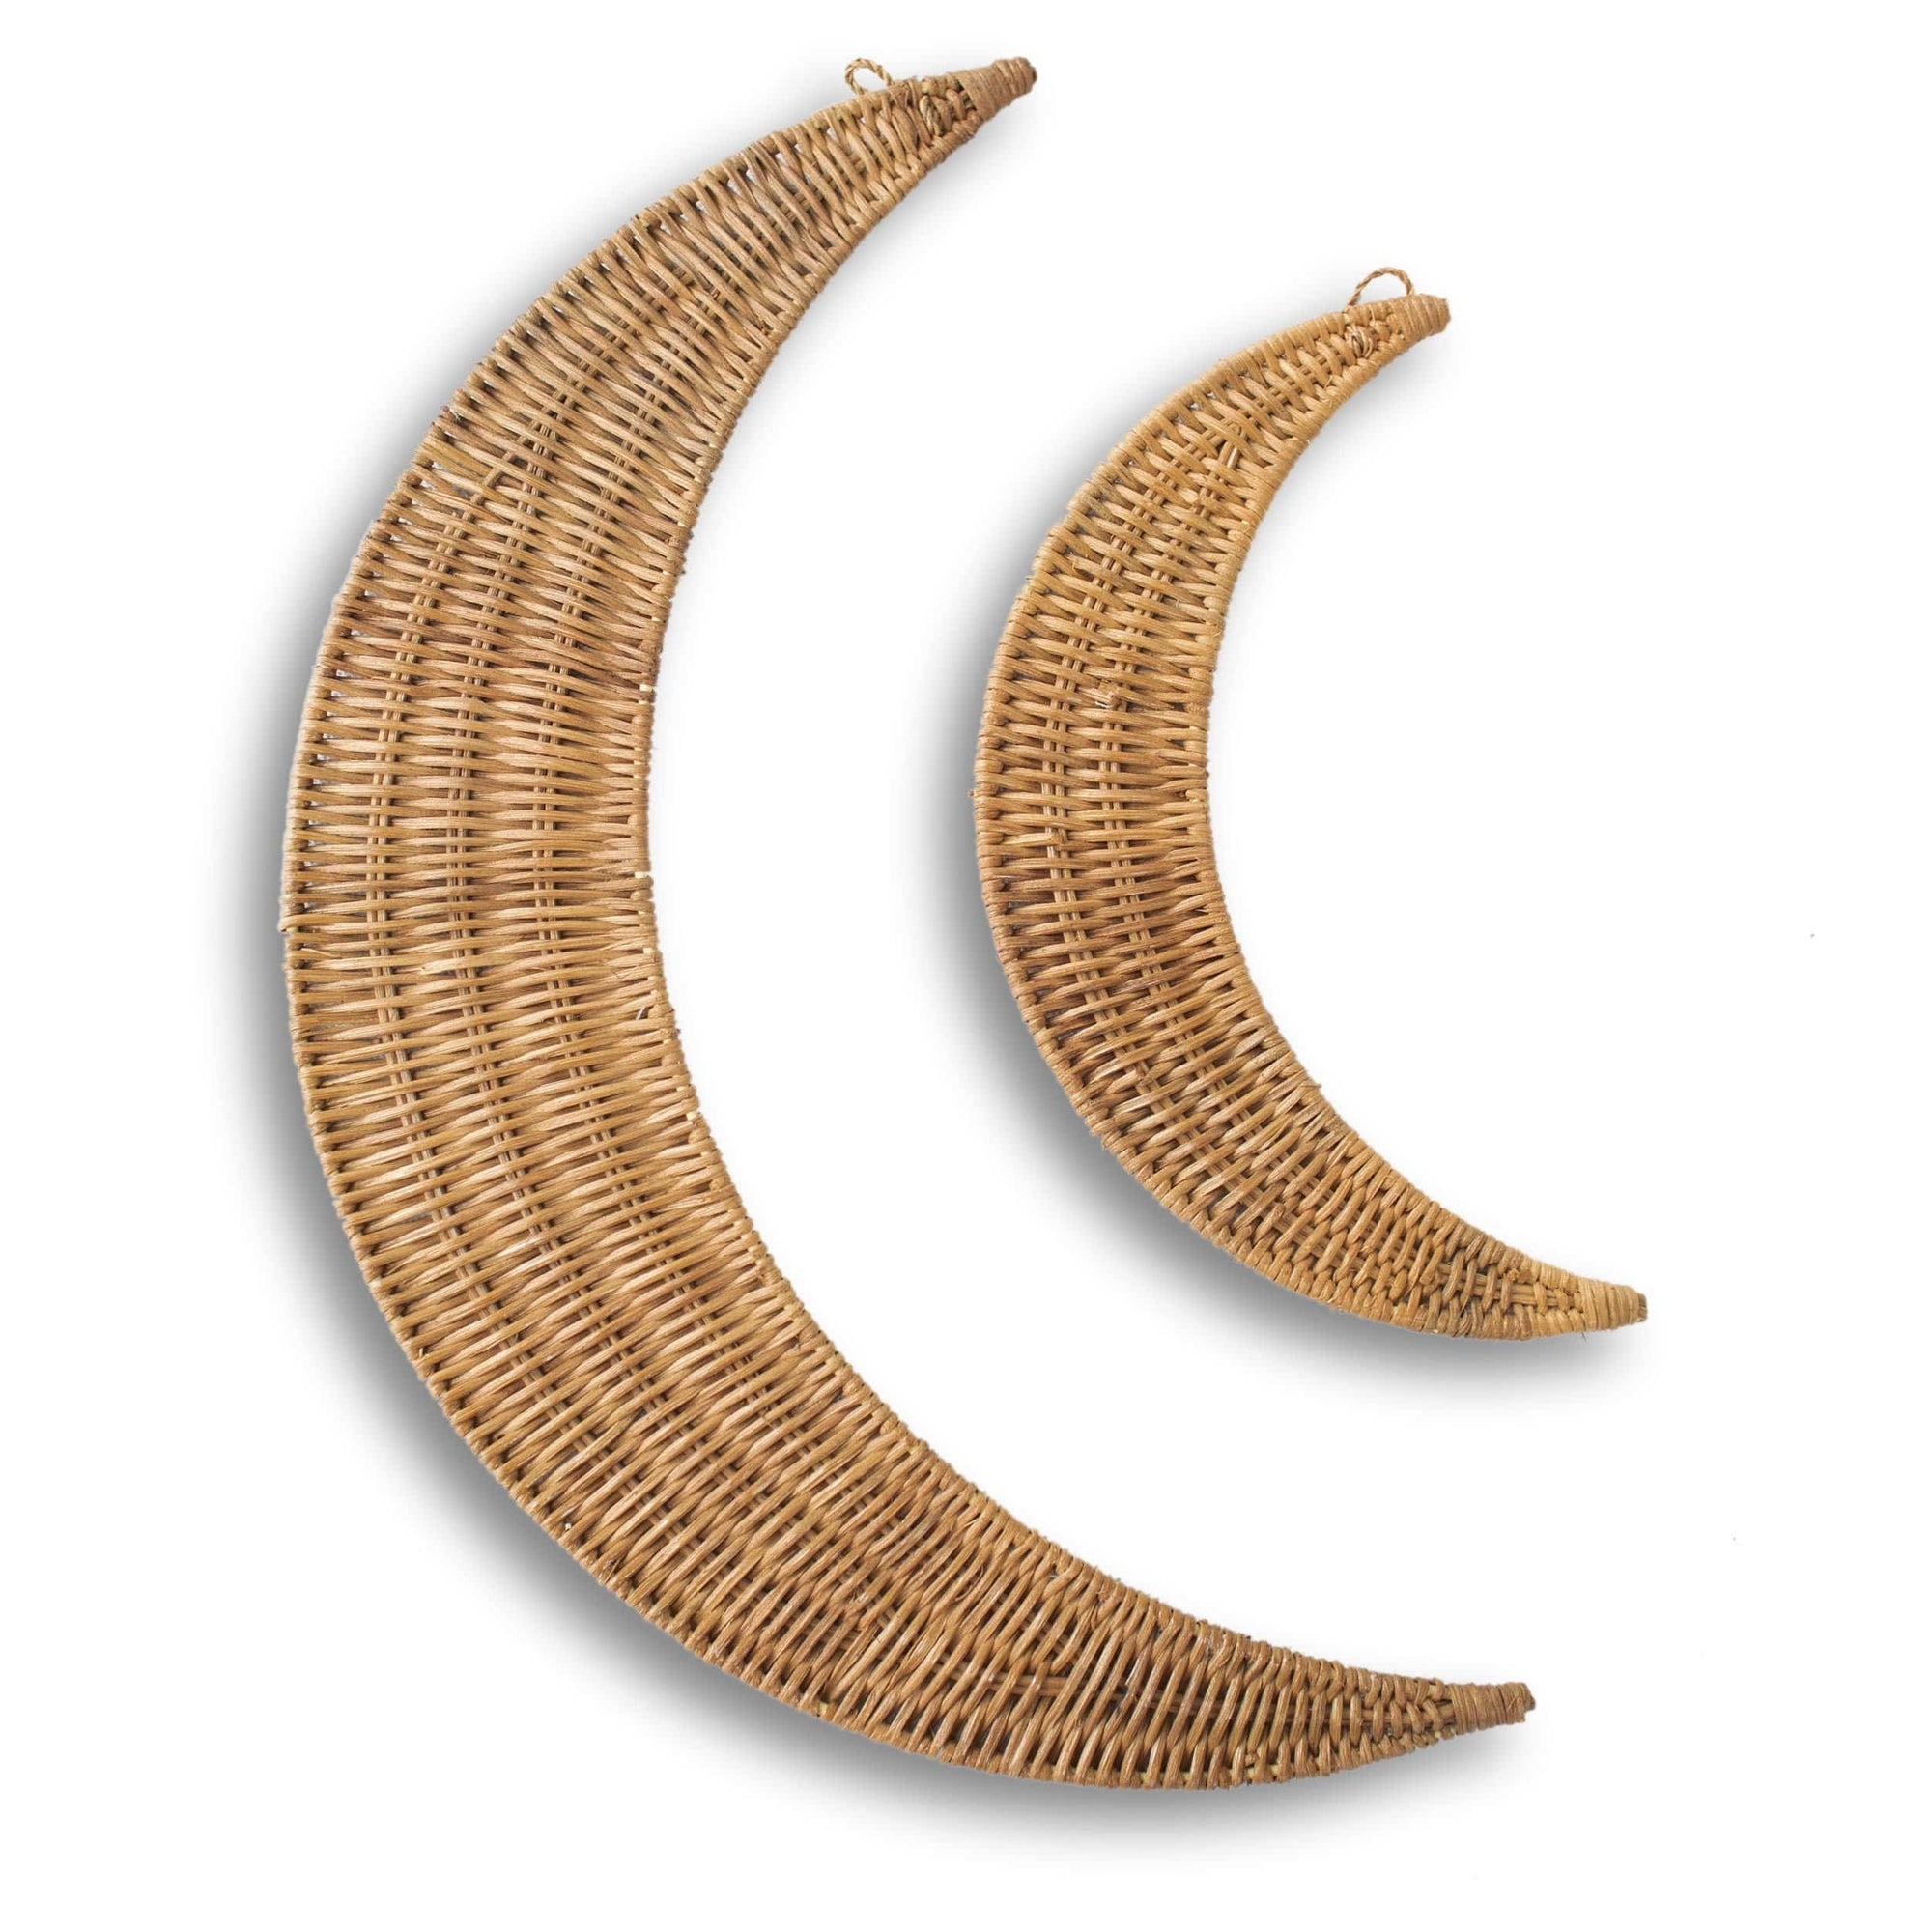 Made Terra Rattan Crescent Moons Wall Hanging Wood Wall Art | Wall Mounted Boho Wood Art Wooden Modern (Set 2)